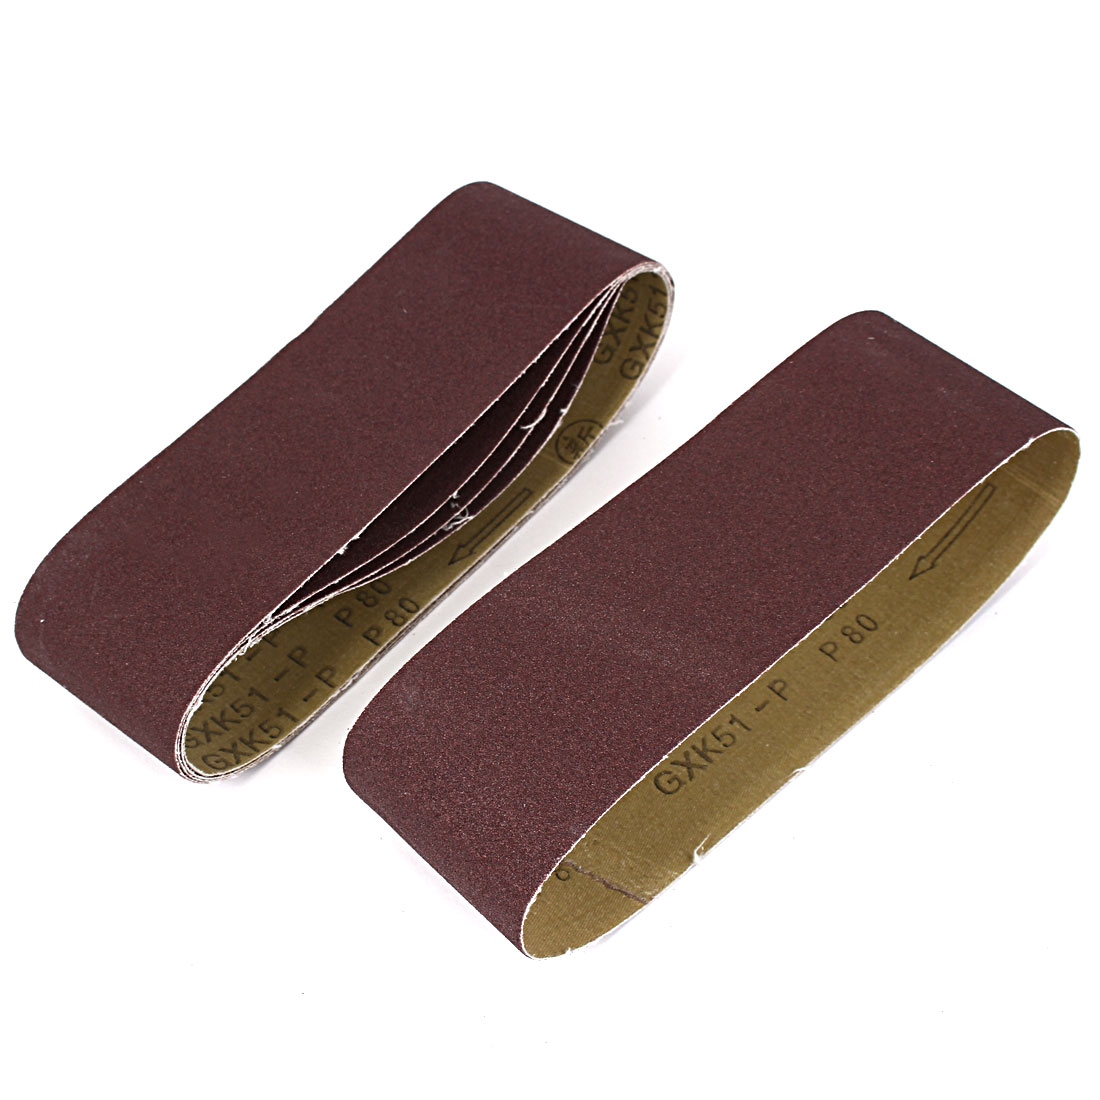 Woodworking 533mmx75mm 80 Grit Abrasive Sanding Belt Sandpaper 5pcs